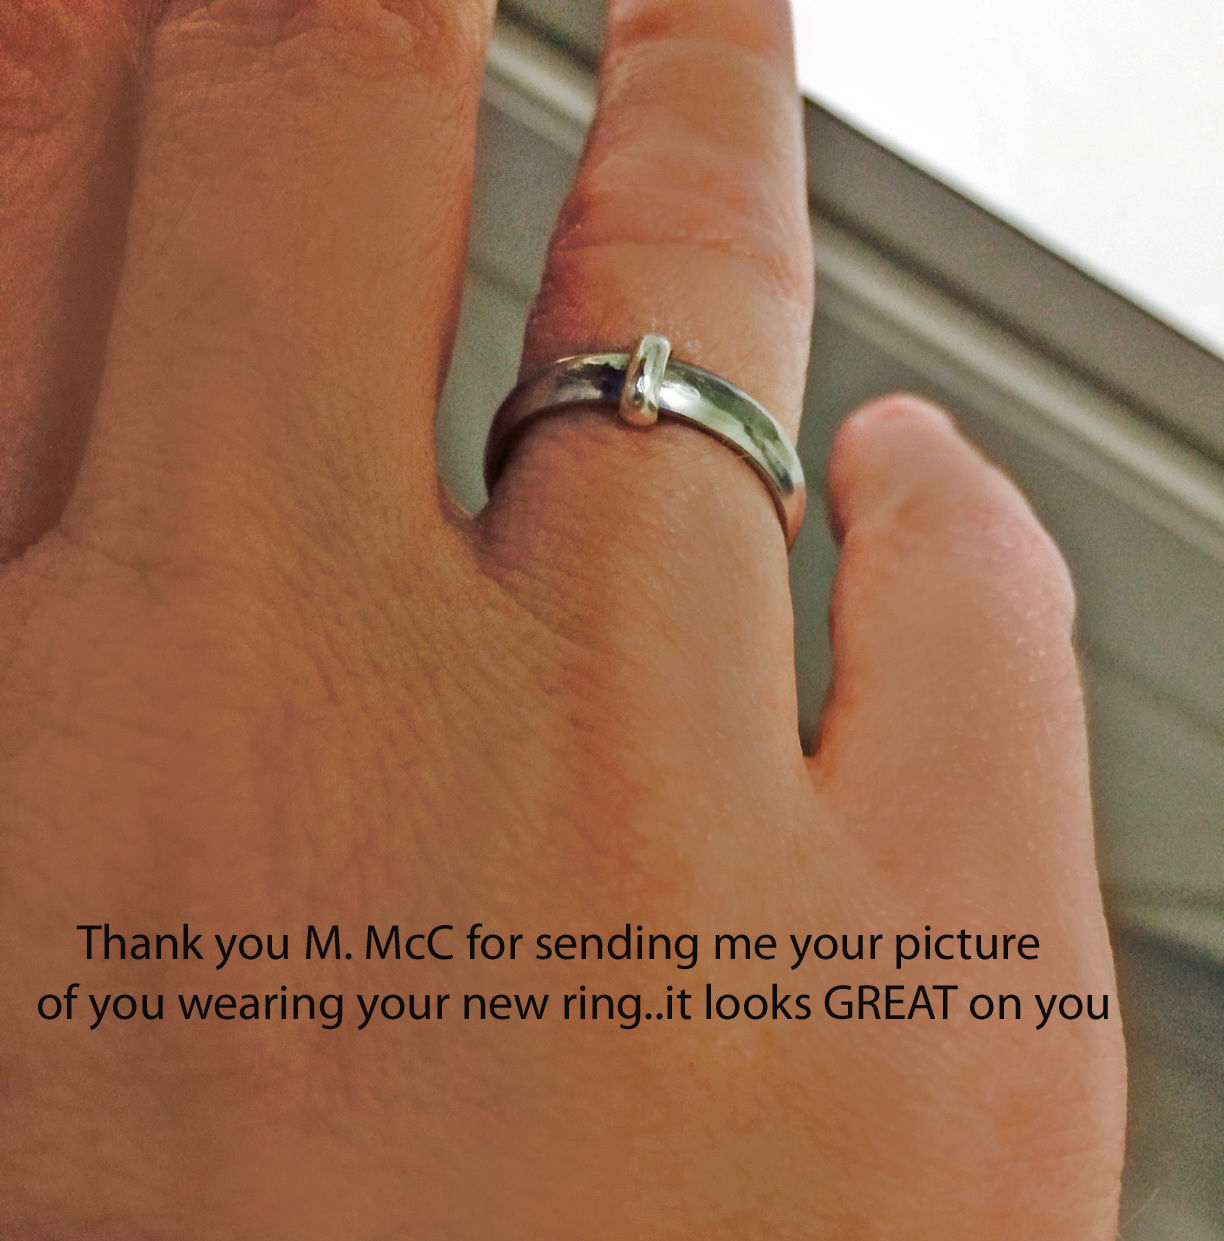 Jewelry claire s wedding band stainless steel amp 14ktgf all sizes